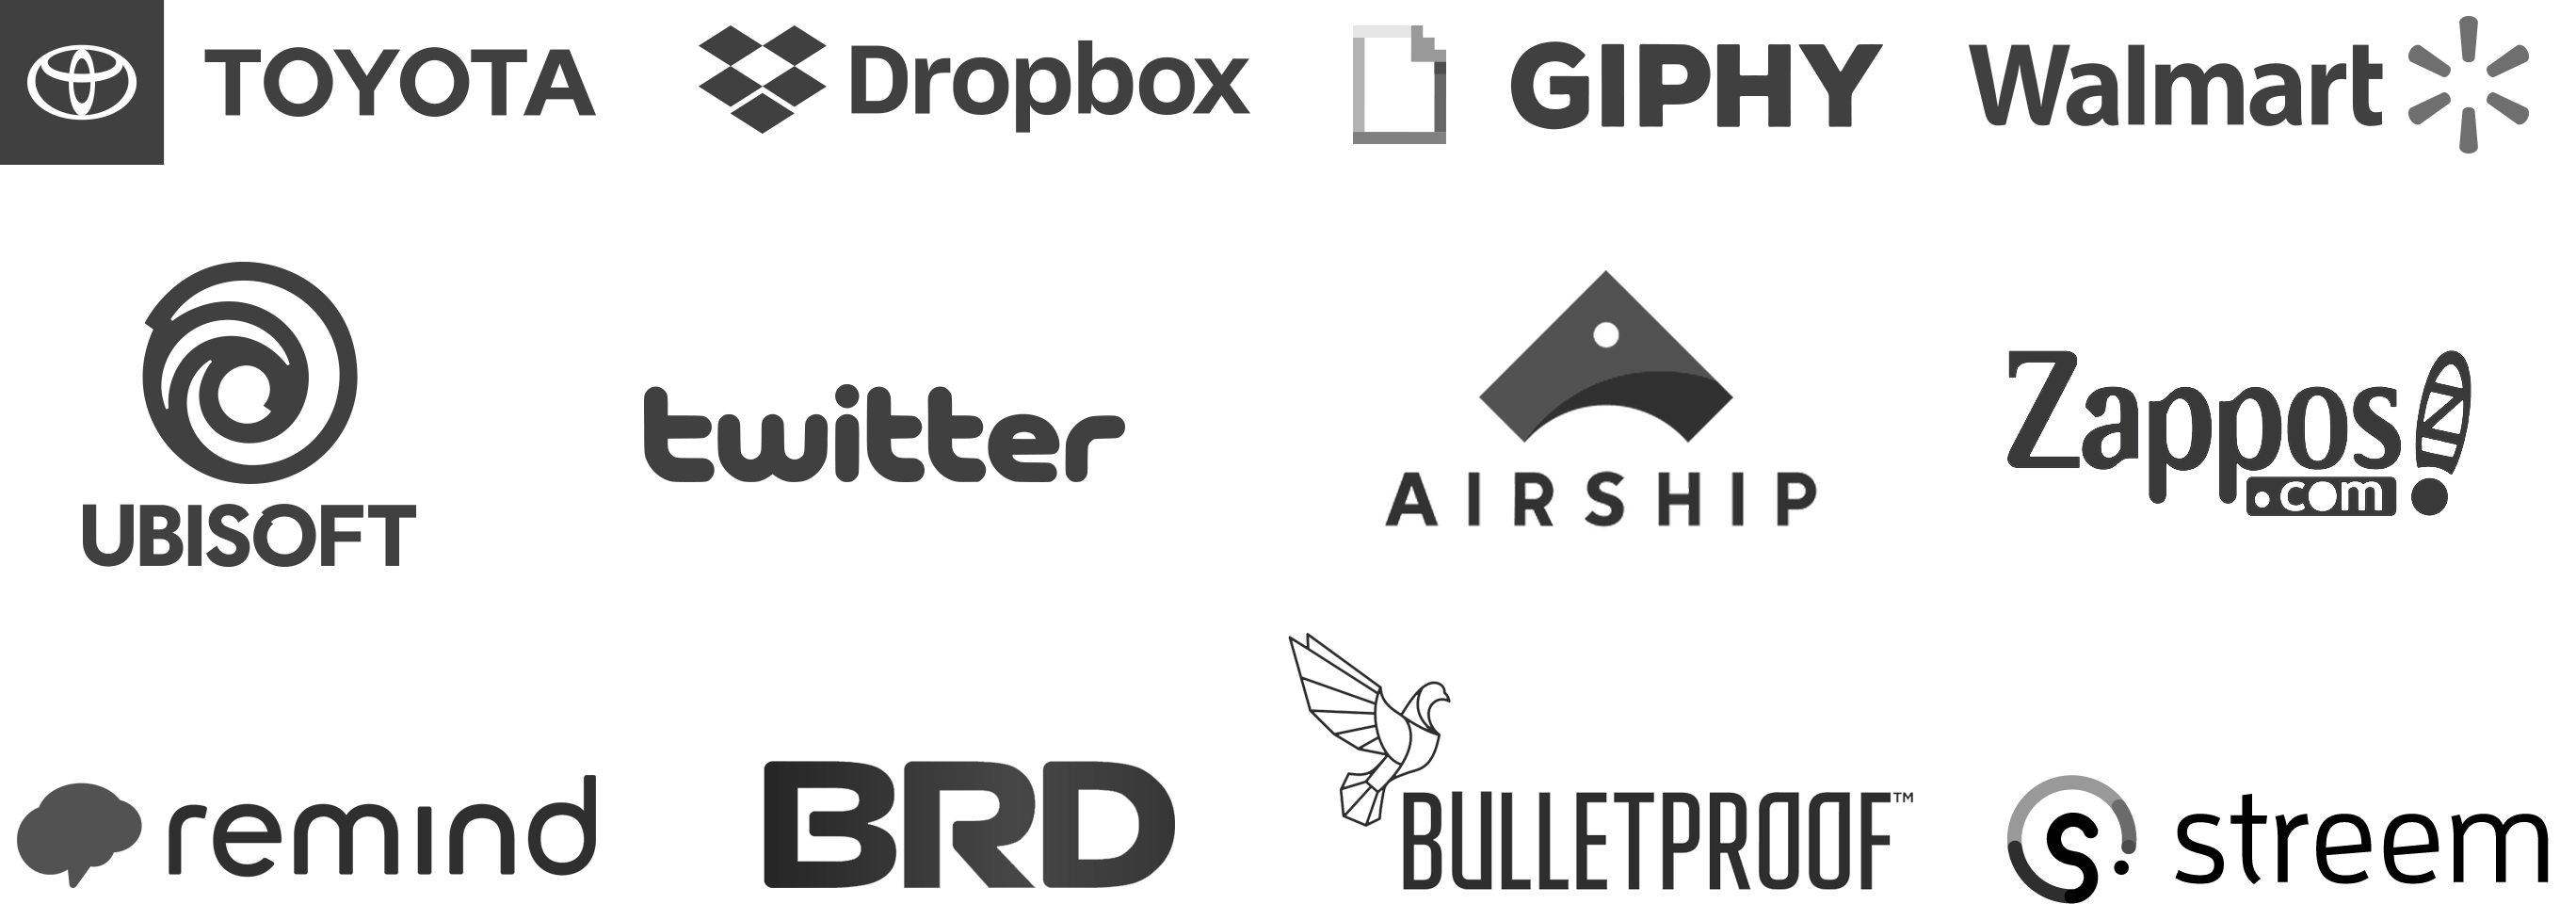 The logos of Toyota, Dropbox, Giphy, Walmart, Ubisoft, Twitter, Airship, Zappos.com, The Atlantic, Remind, BRD, Bulletproof, and Streem